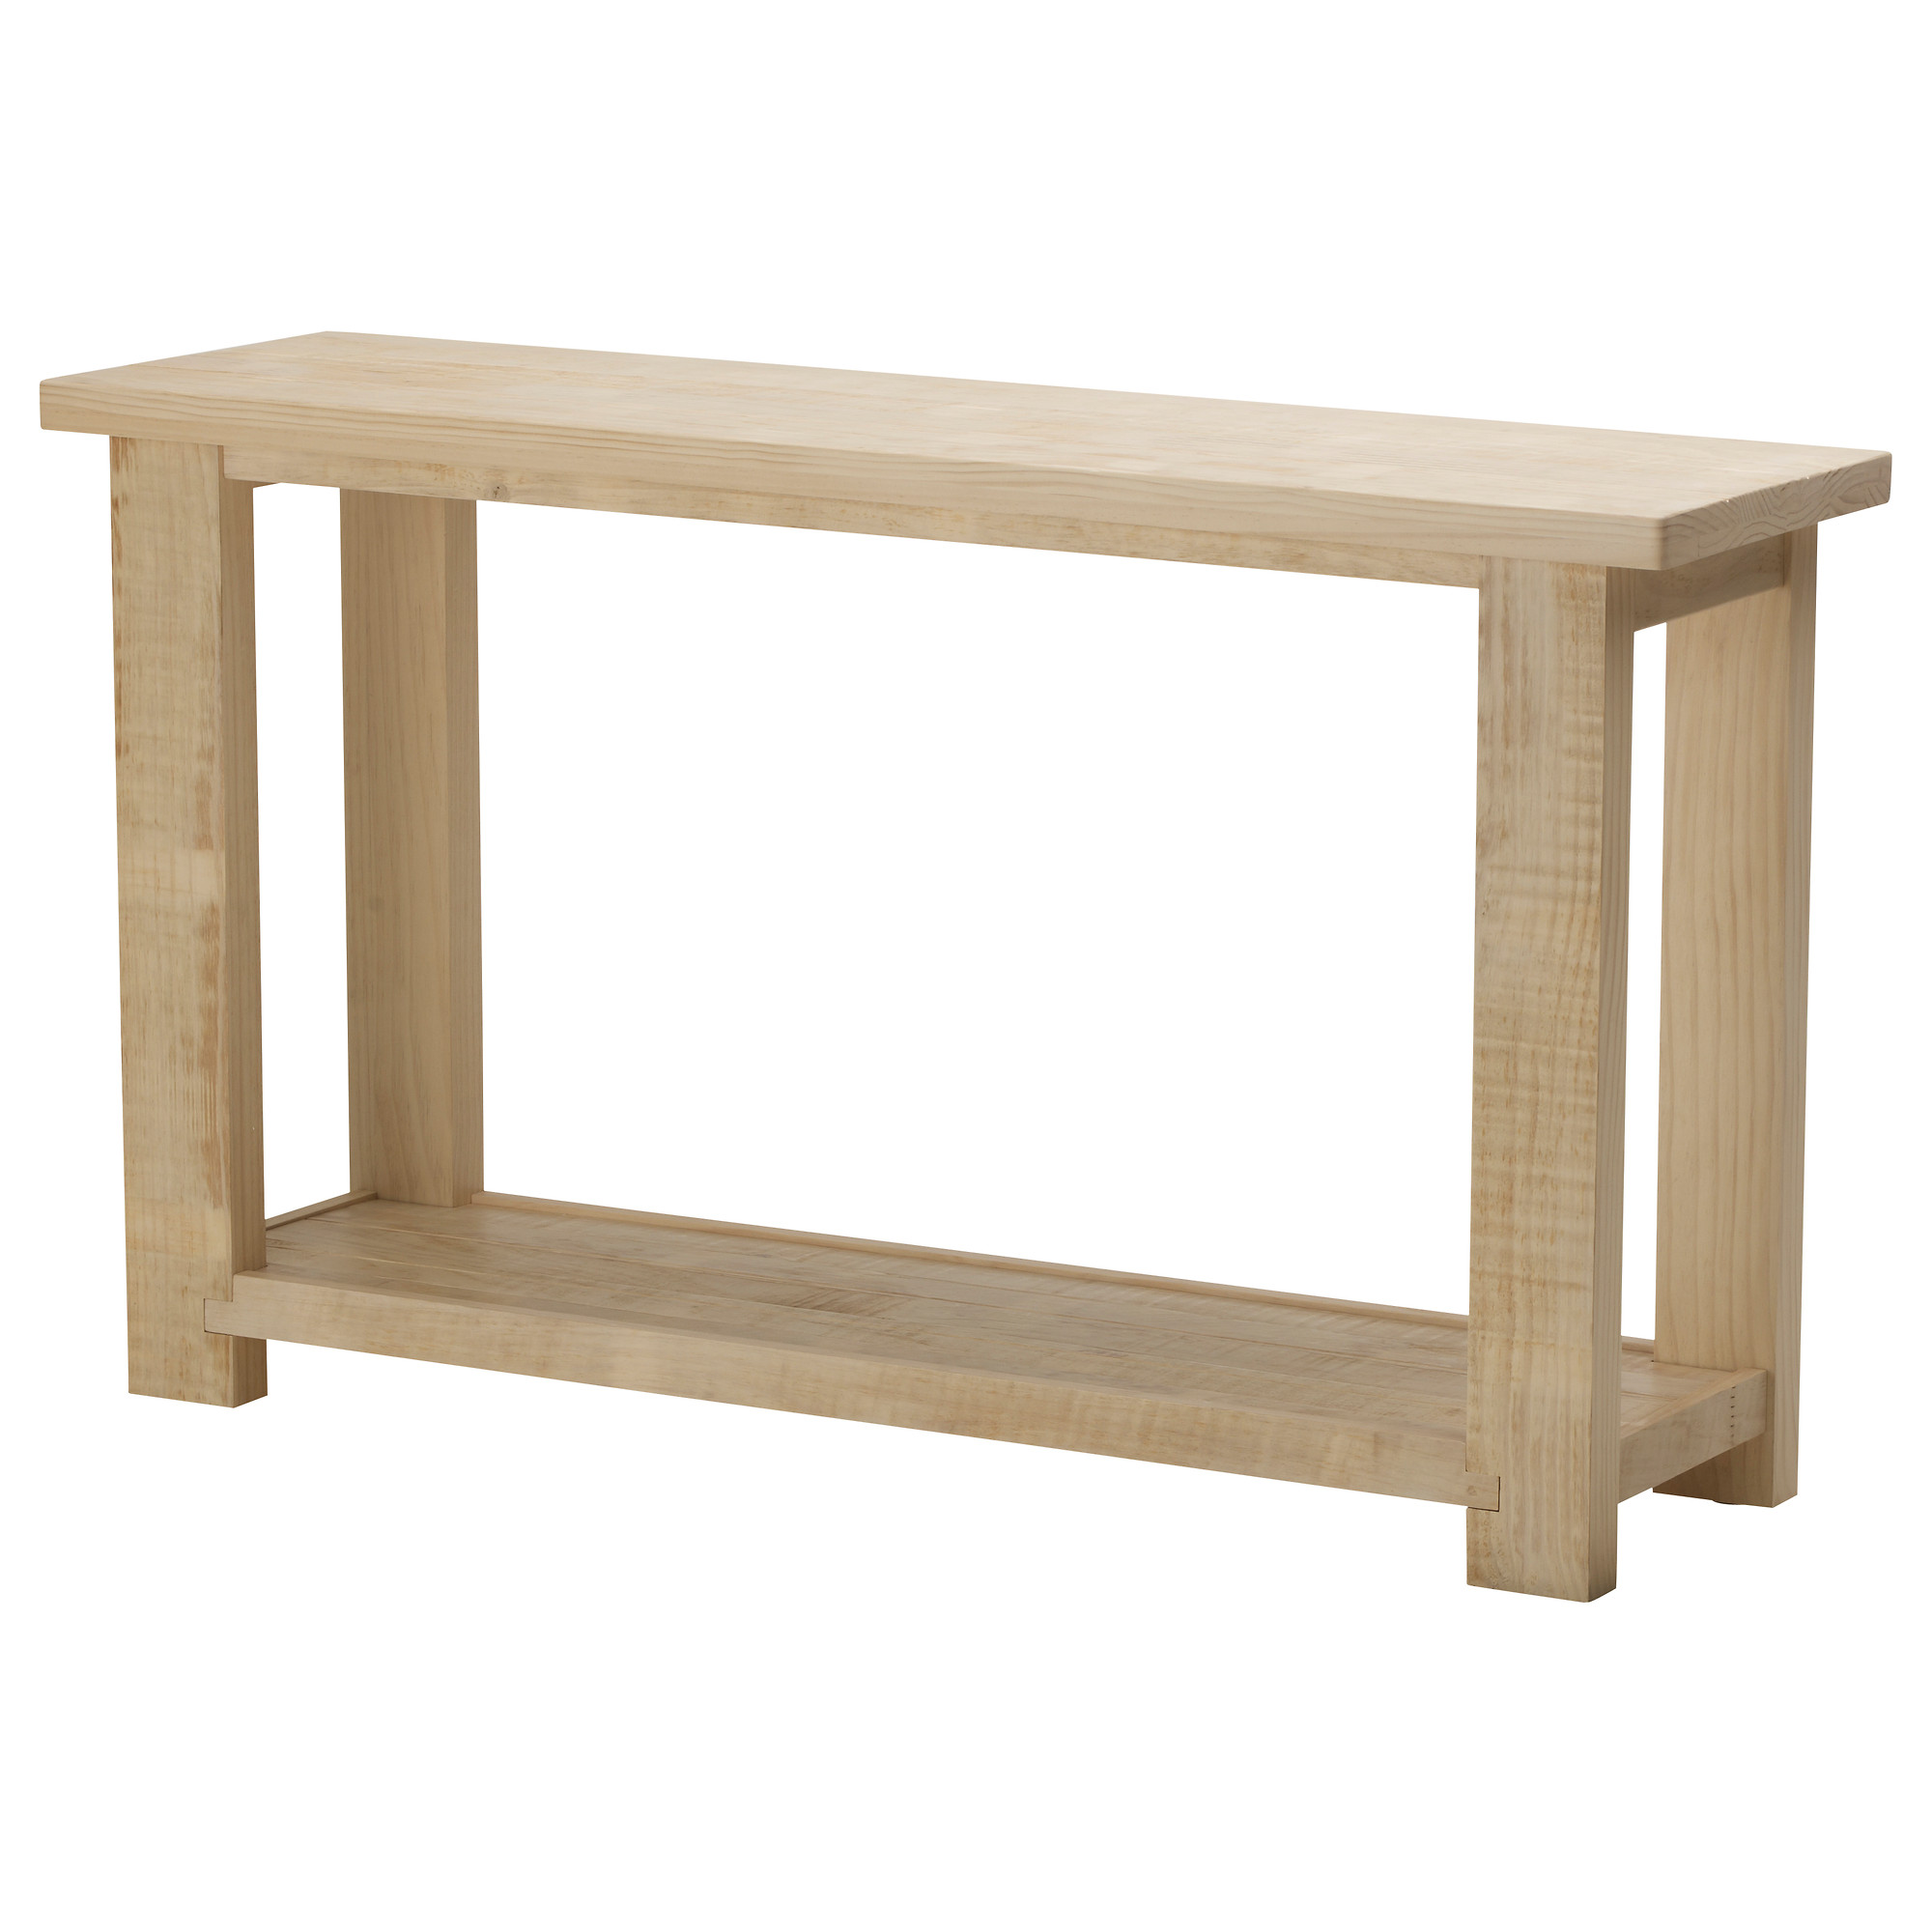 Perfect Modern Sofa Table 22 Contemporary Sofa Inspiration with Modern Sofa Table